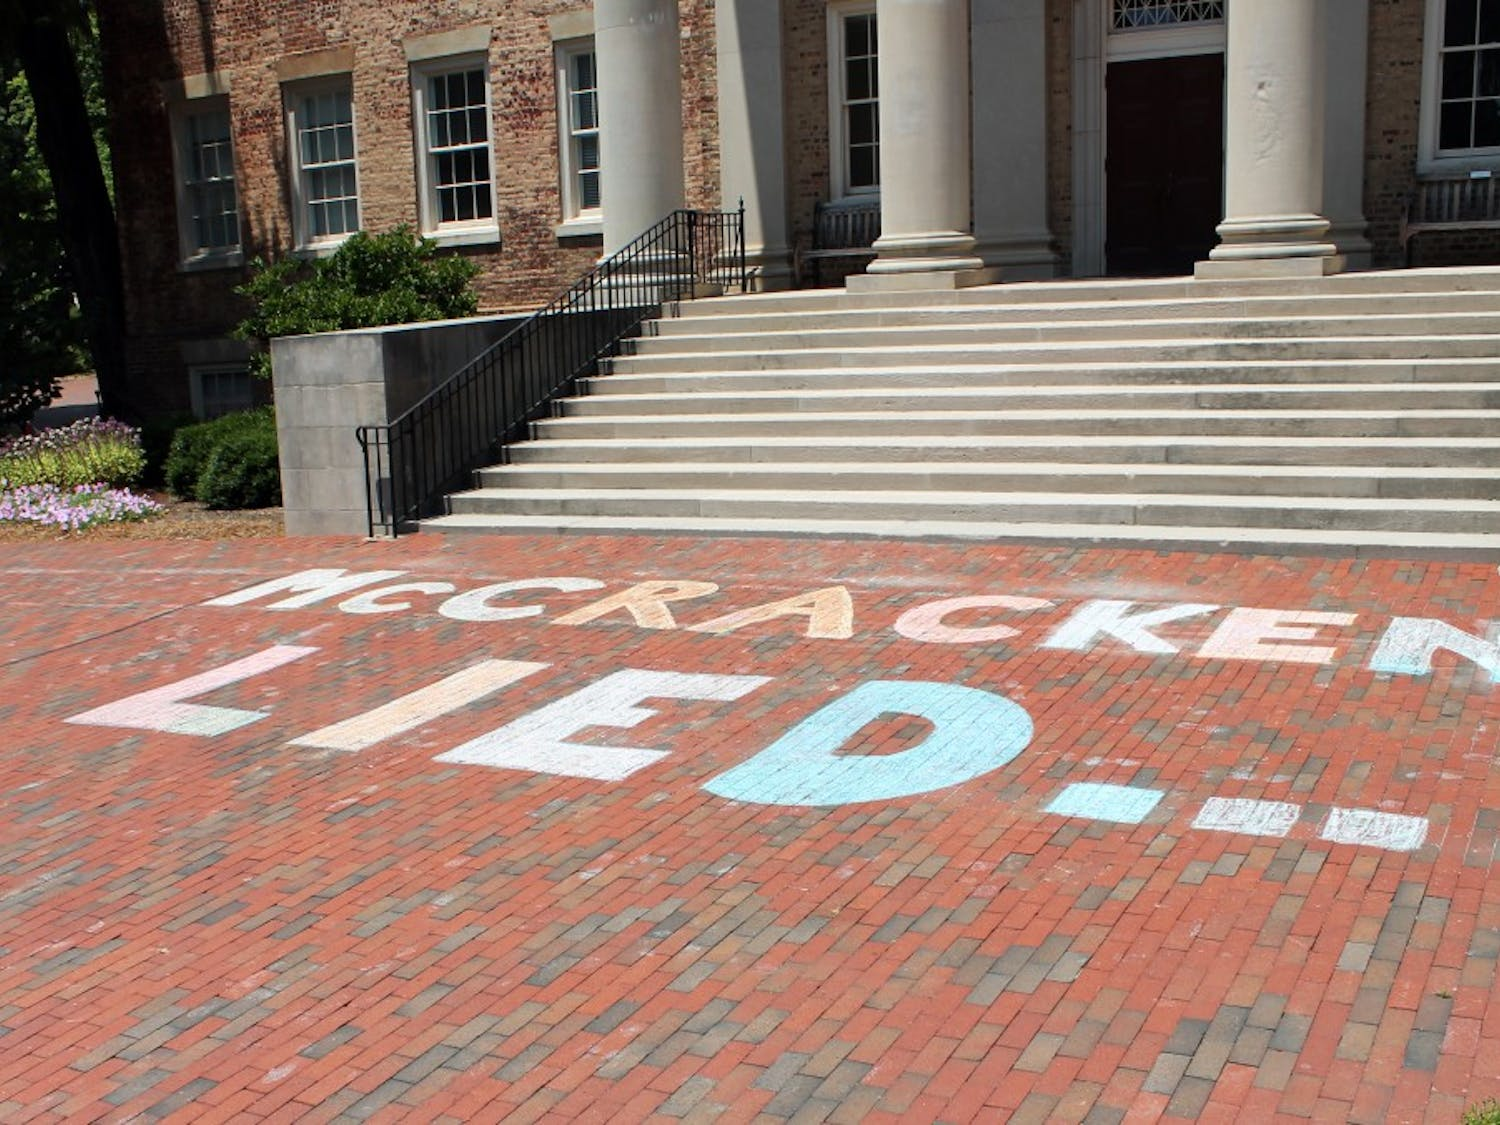 """On July 11, protestors chalked """"McCracken Lied"""" on the bricks in front of South Building."""